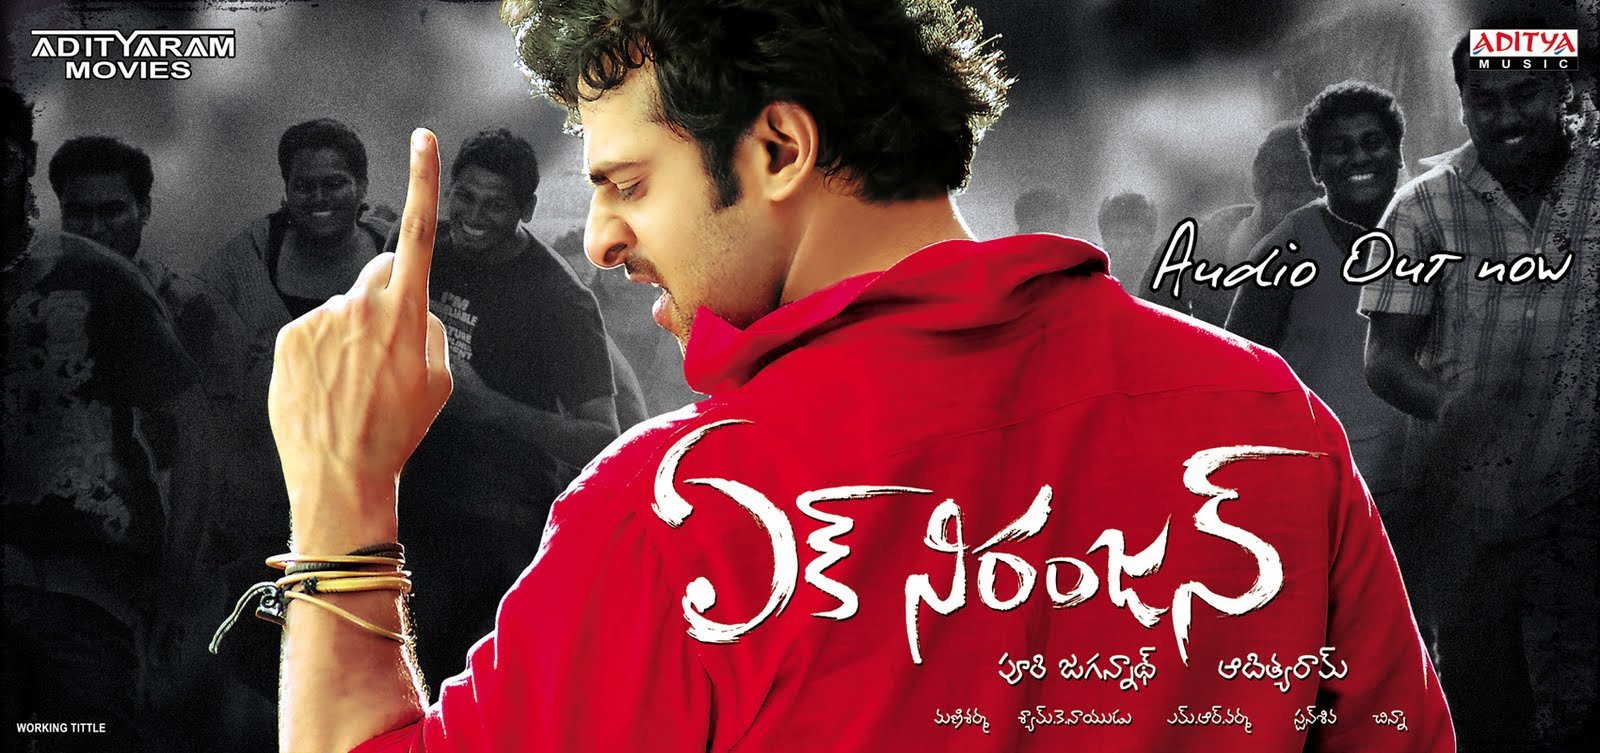 Prabhas Ek Niranjan Wallpapers Posters (3)